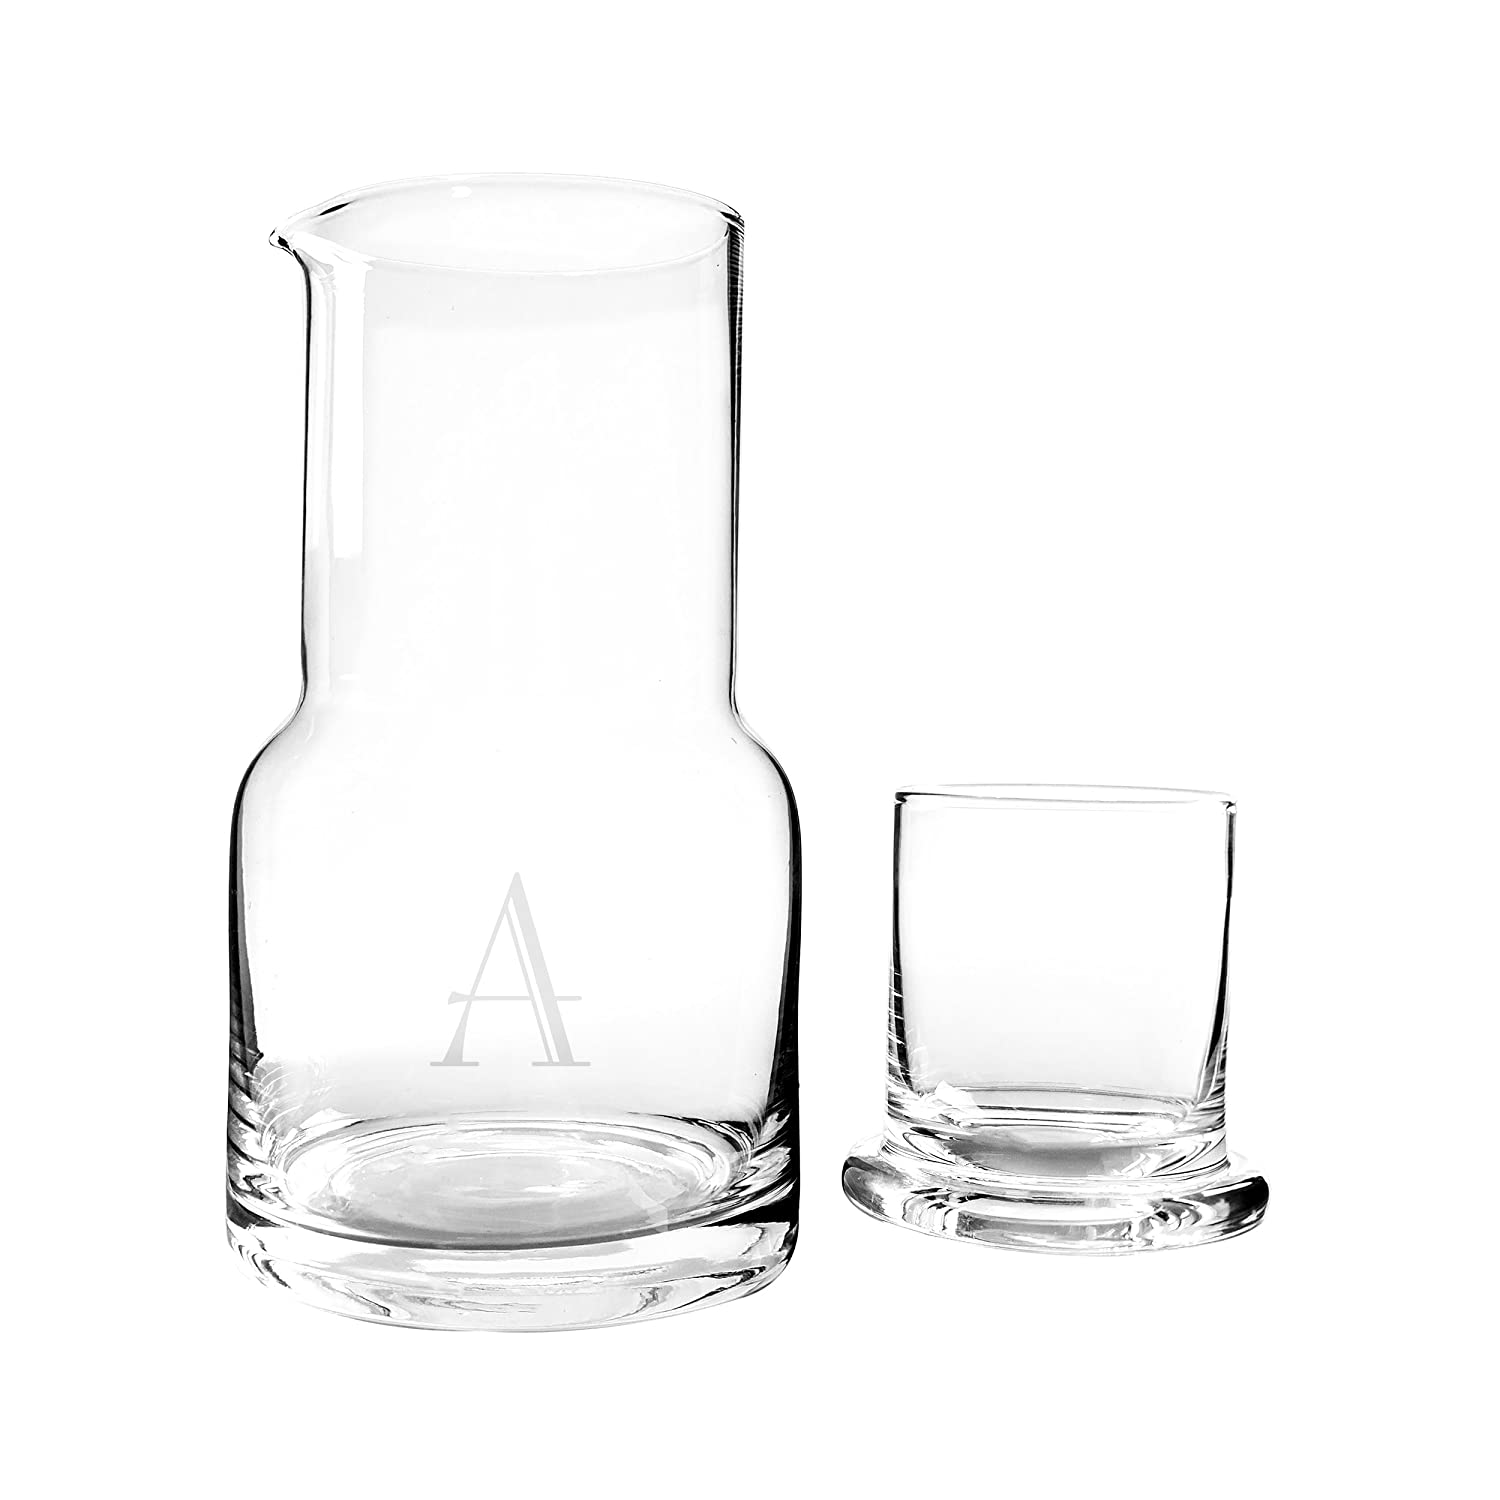 Cathy's Concepts Personalized Bedside Water Carafe & Glass Set, Letter S Cathy's Concepts 2222-S